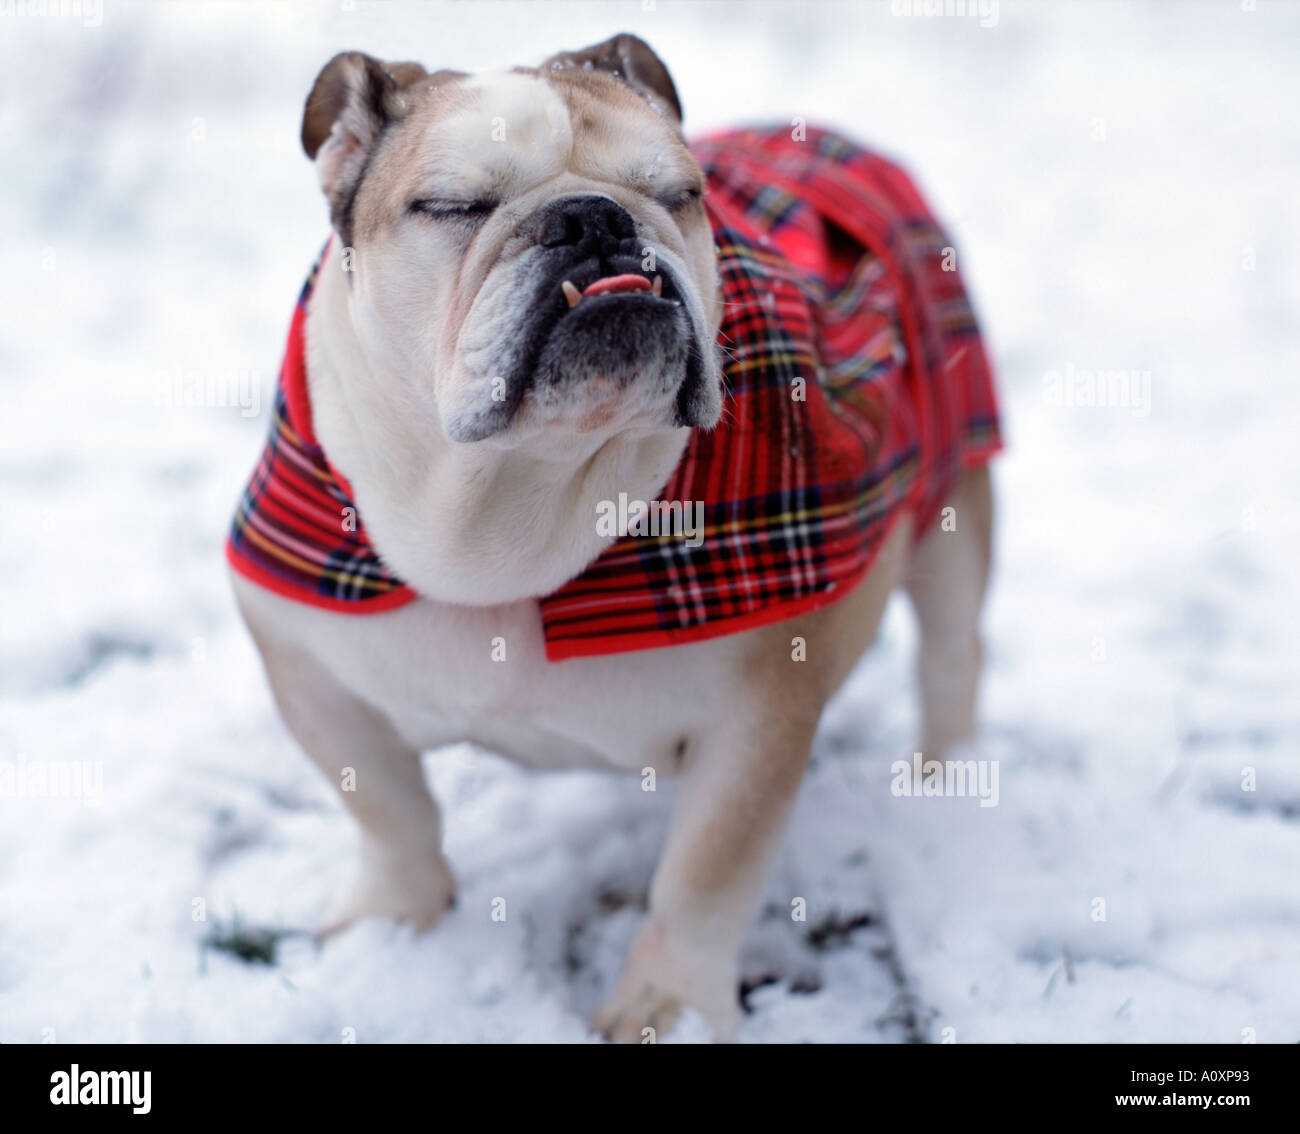 British Bulldog with eyes closed on walk in snow - Stock Image